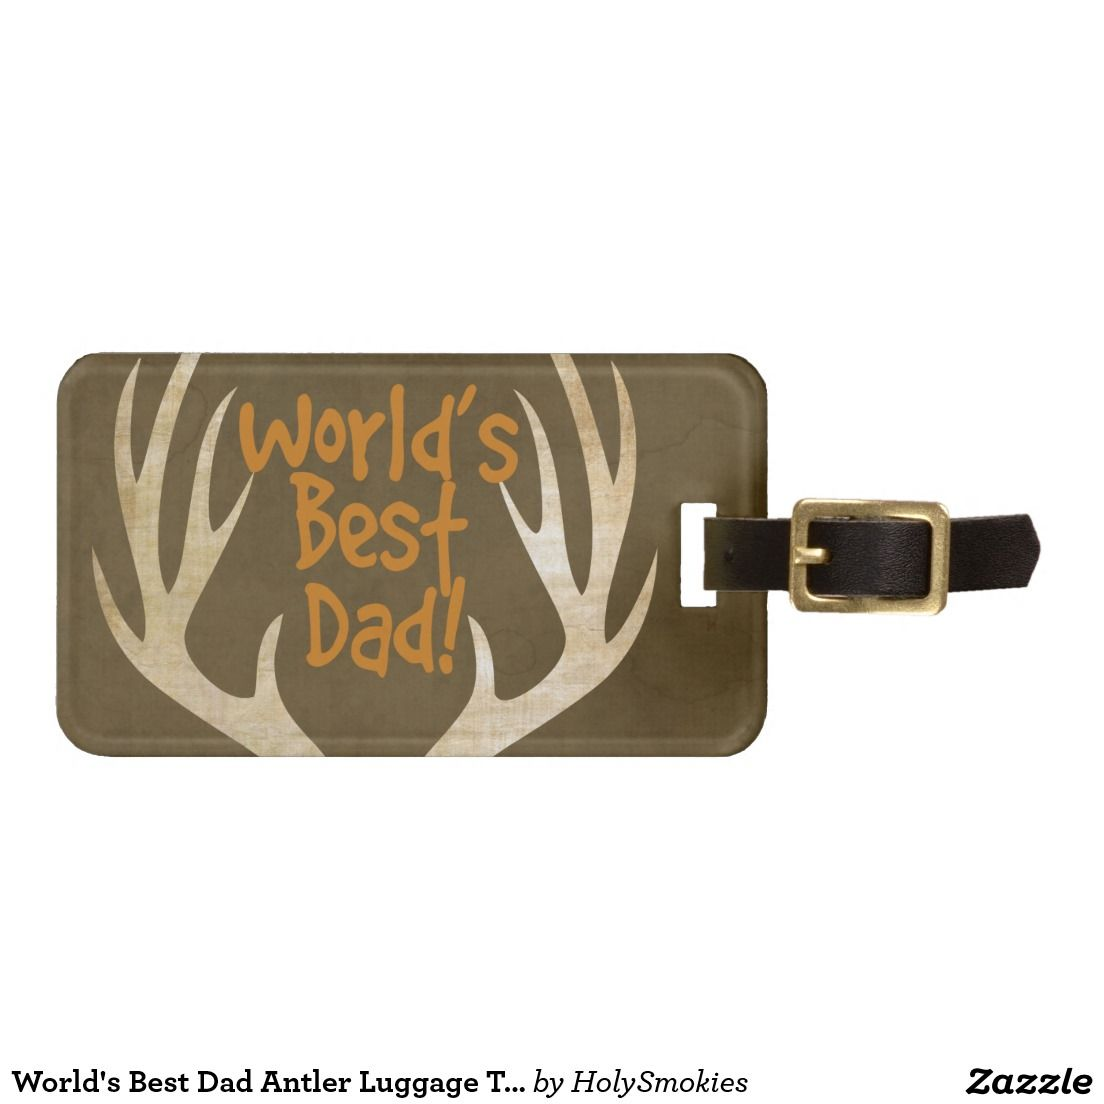 World's Best Dad Antler Luggage Tag #fathersday #zazzle #zazzlefathersday #luggagetag #fathersdaygifts